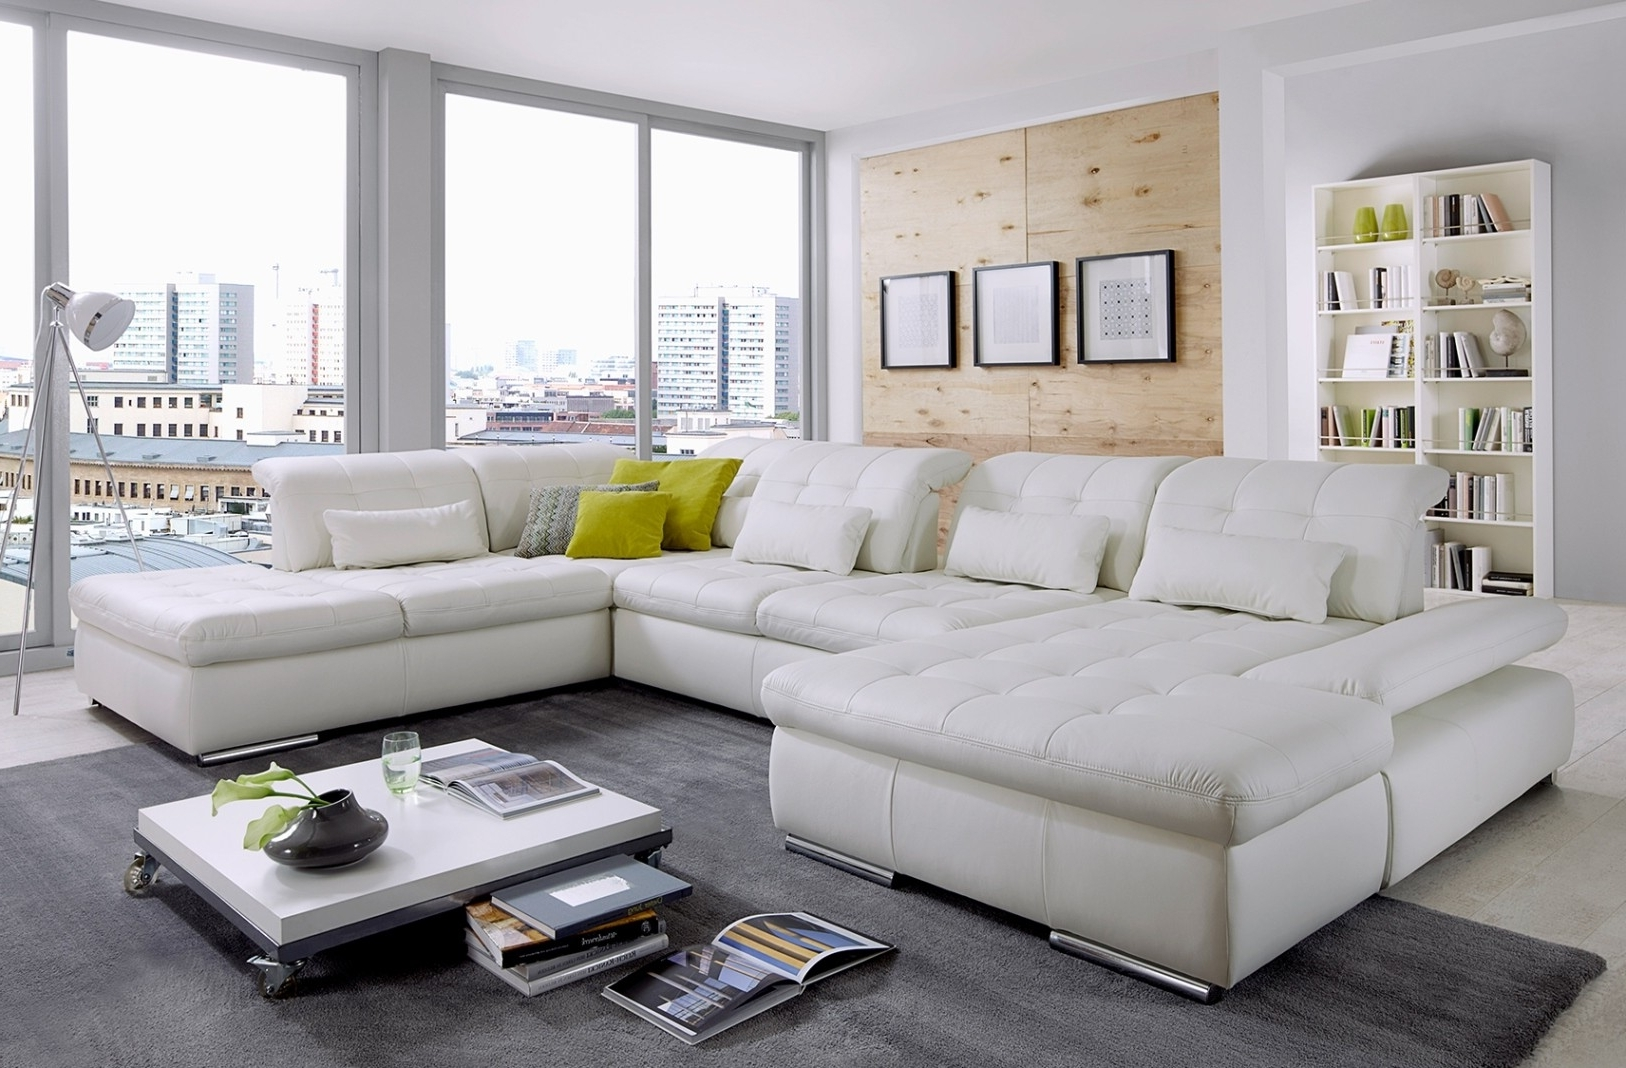 Alpine Sectional Sofa In Punch White Leather For Favorite Panama City Fl Sectional Sofas (View 1 of 20)